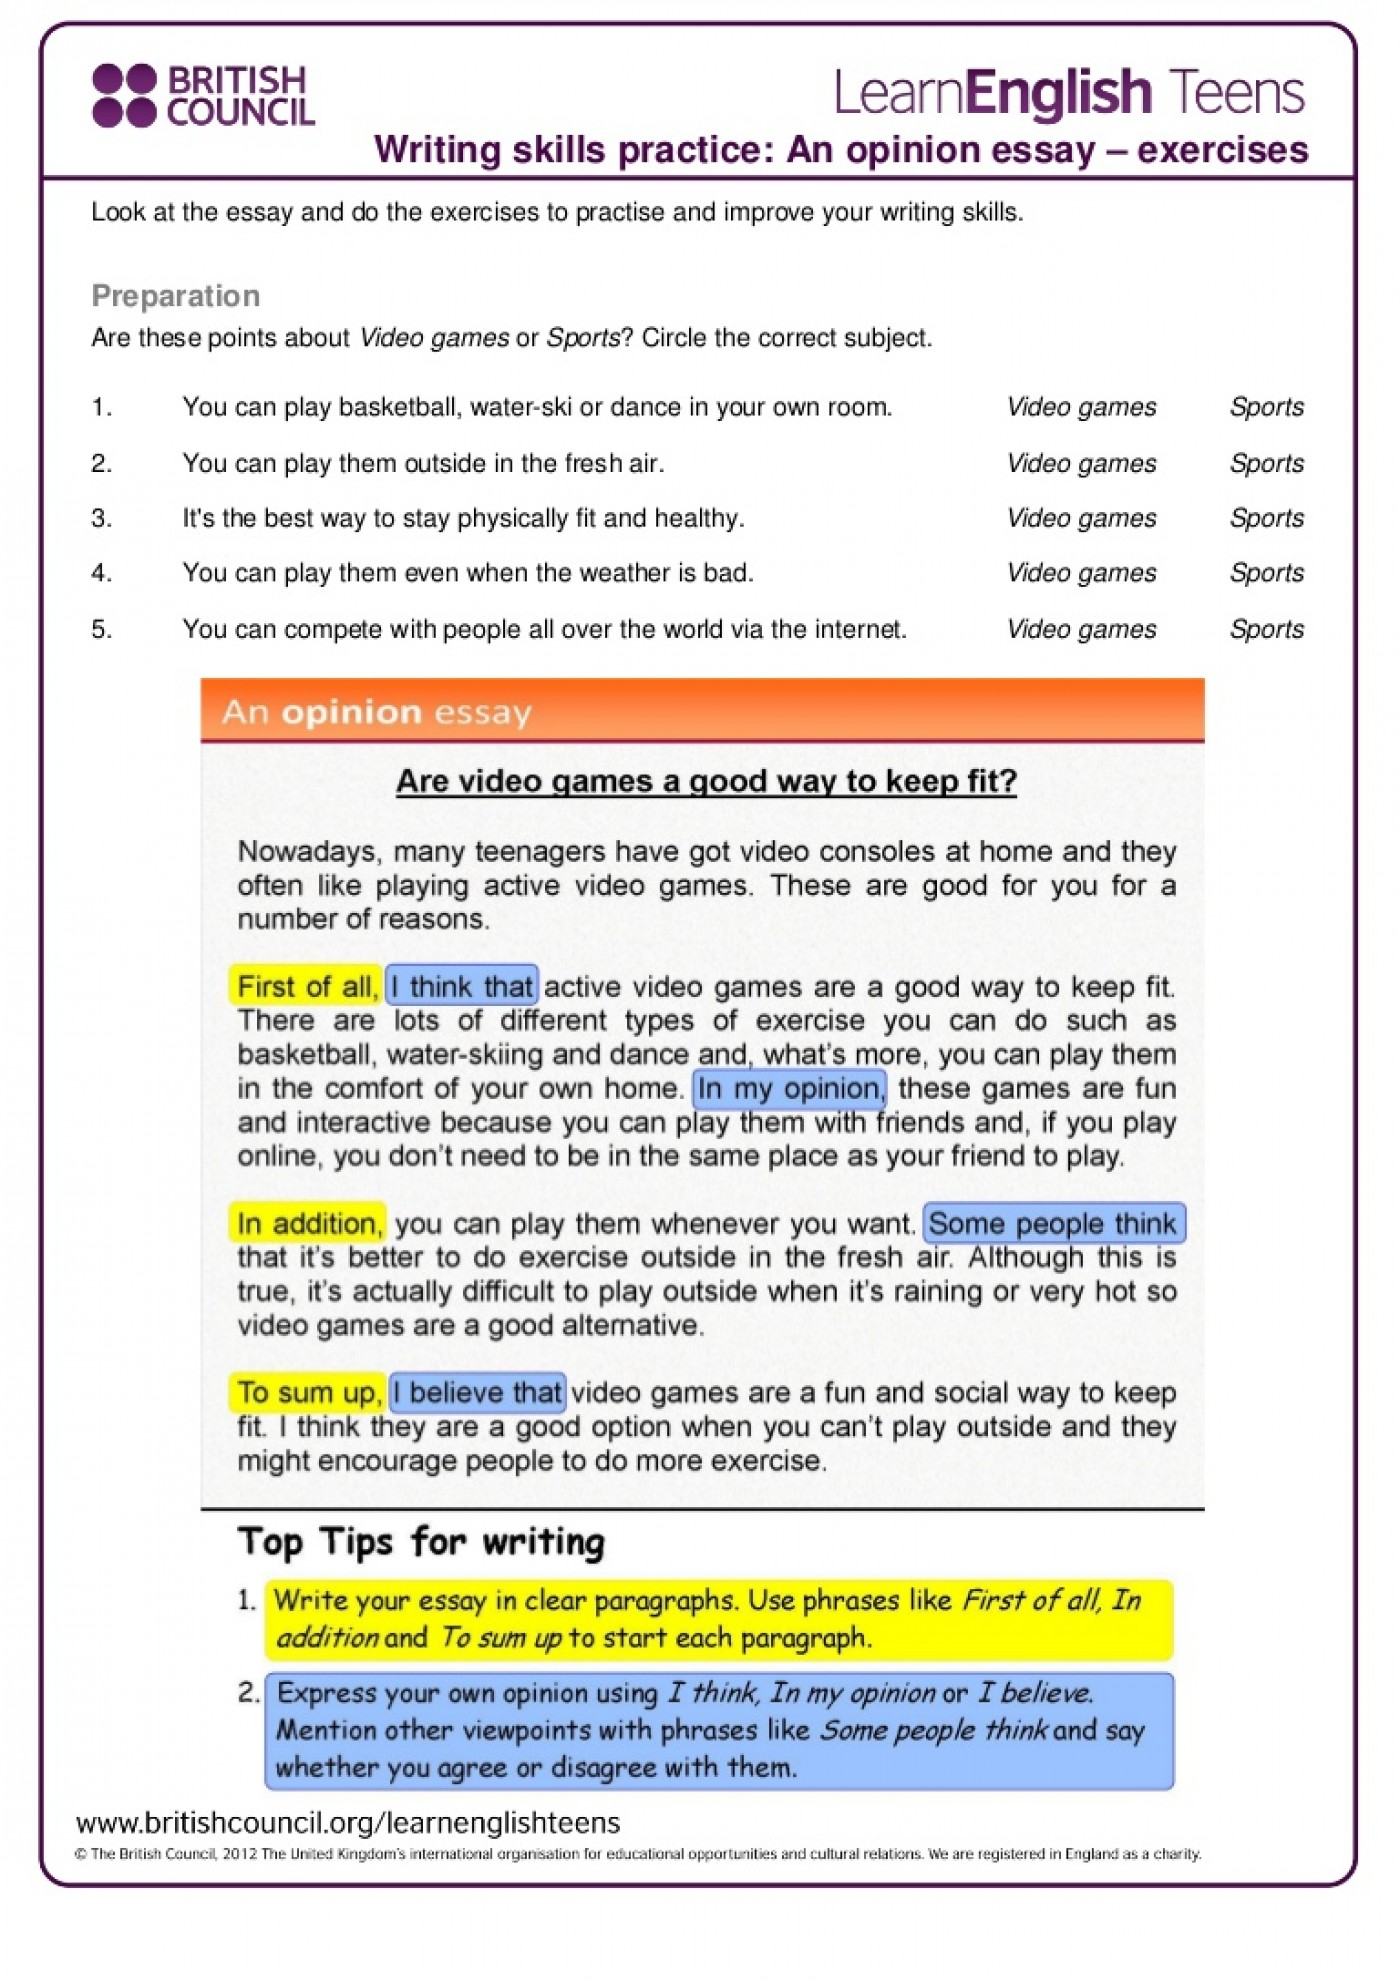 009 Writing Skills Essay Online Ielts Courses Podcast Jc Economics How To Write An Opinion 4th Grade Anopinionessay Exercises Thumbn Unbelievable Conclusion On A Book Video 1400